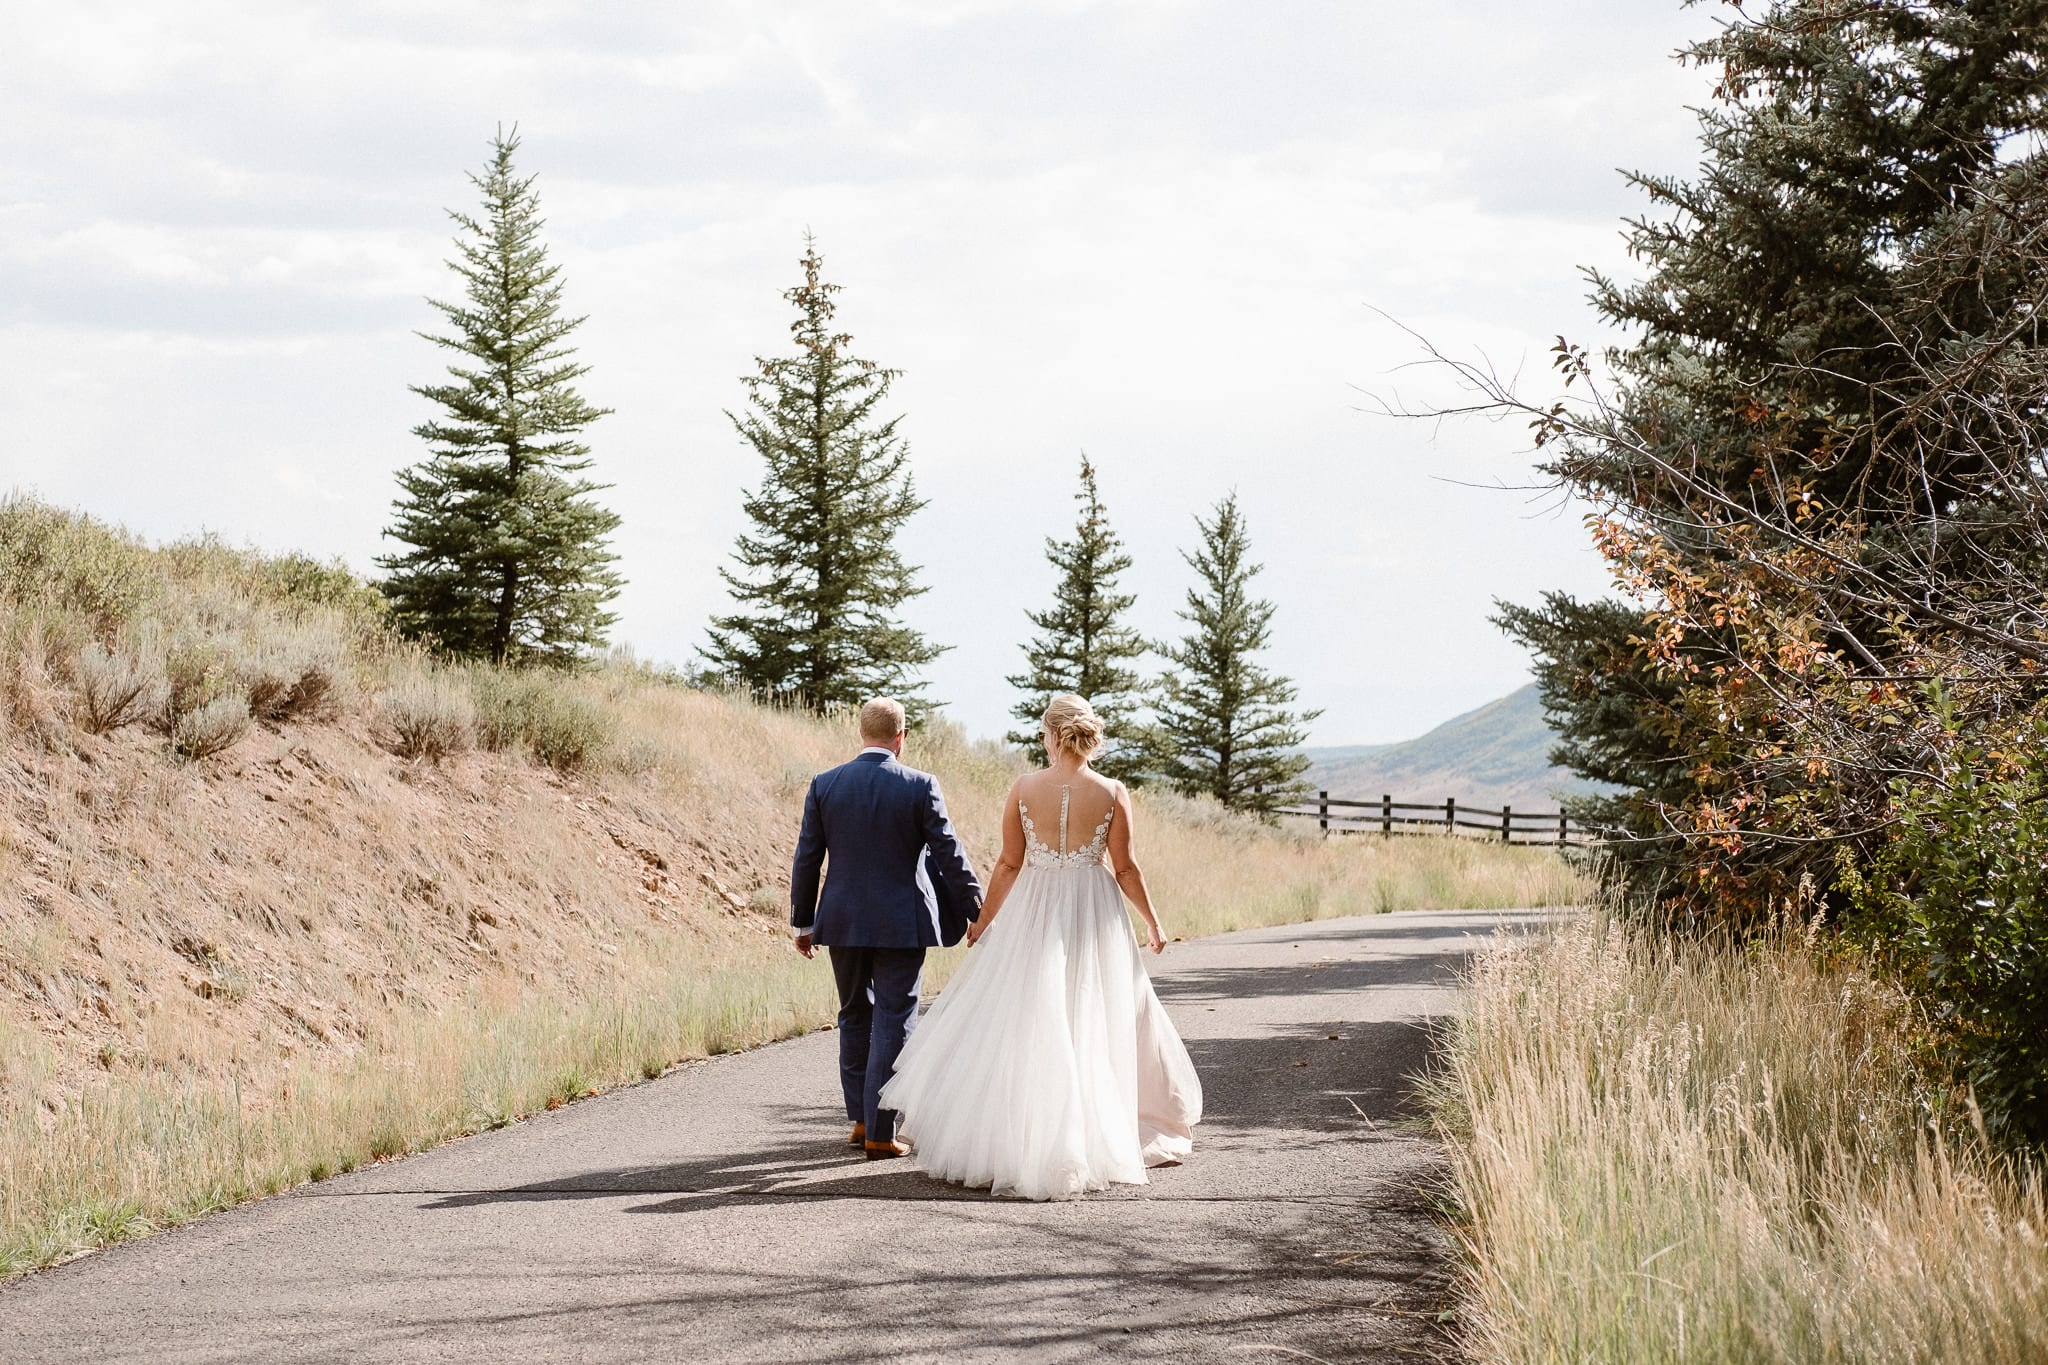 Steamboat Springs wedding photographer, La Joya Dulce wedding, Colorado ranch wedding venues, bride and groom portraits, bride and groom walking down road